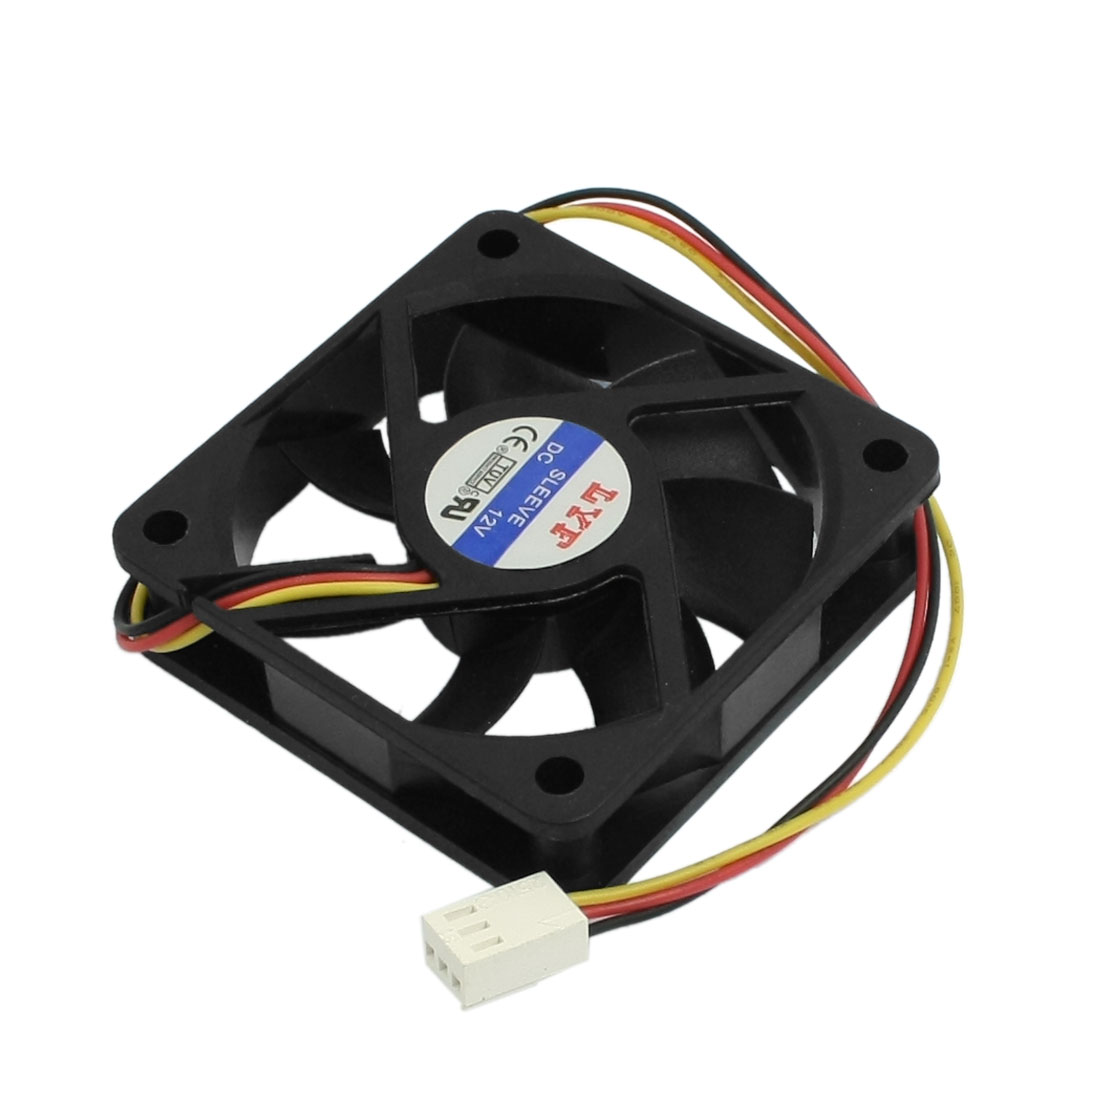 50mm x 50mm x 12mm 5010 DC 12V 0.12A Brushless Cooling Fan